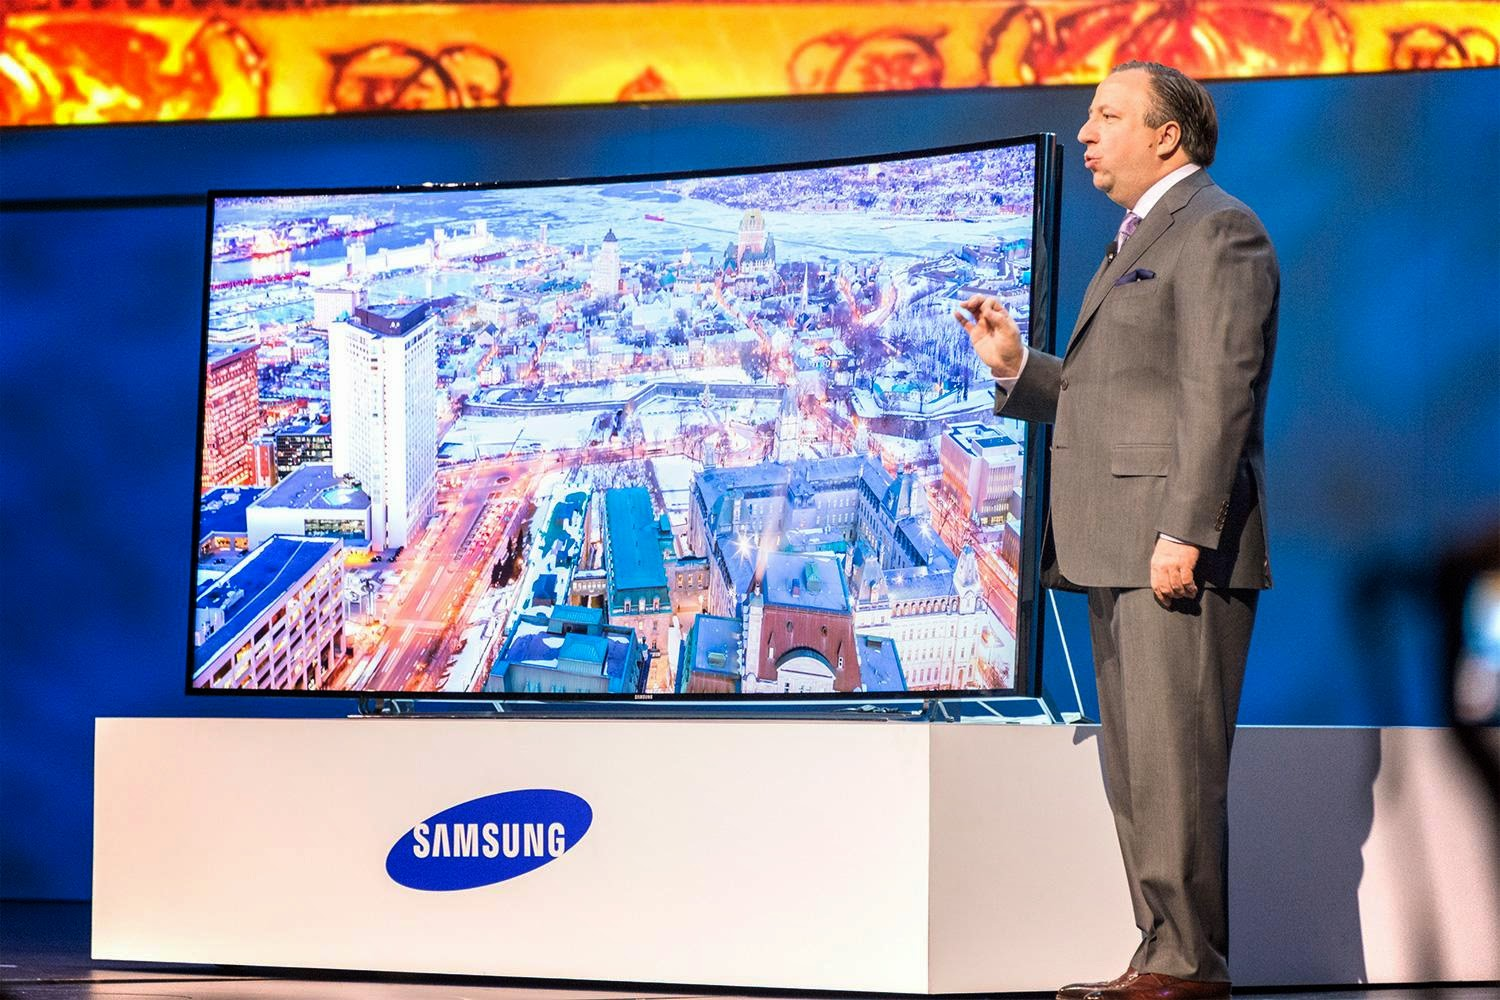 samsung curved uhd tv